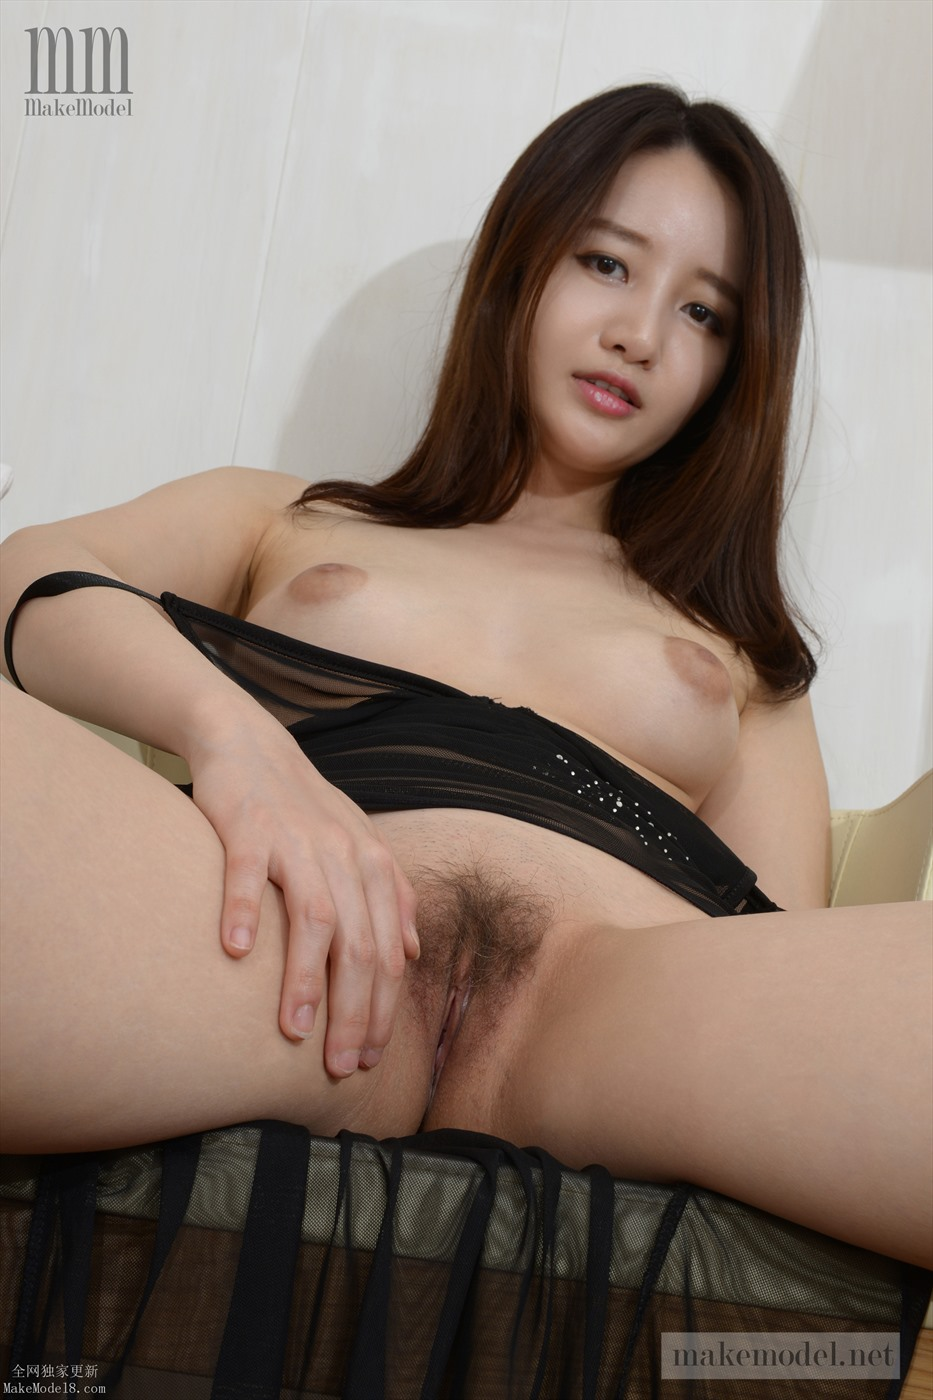 nude gallery models korean pictures